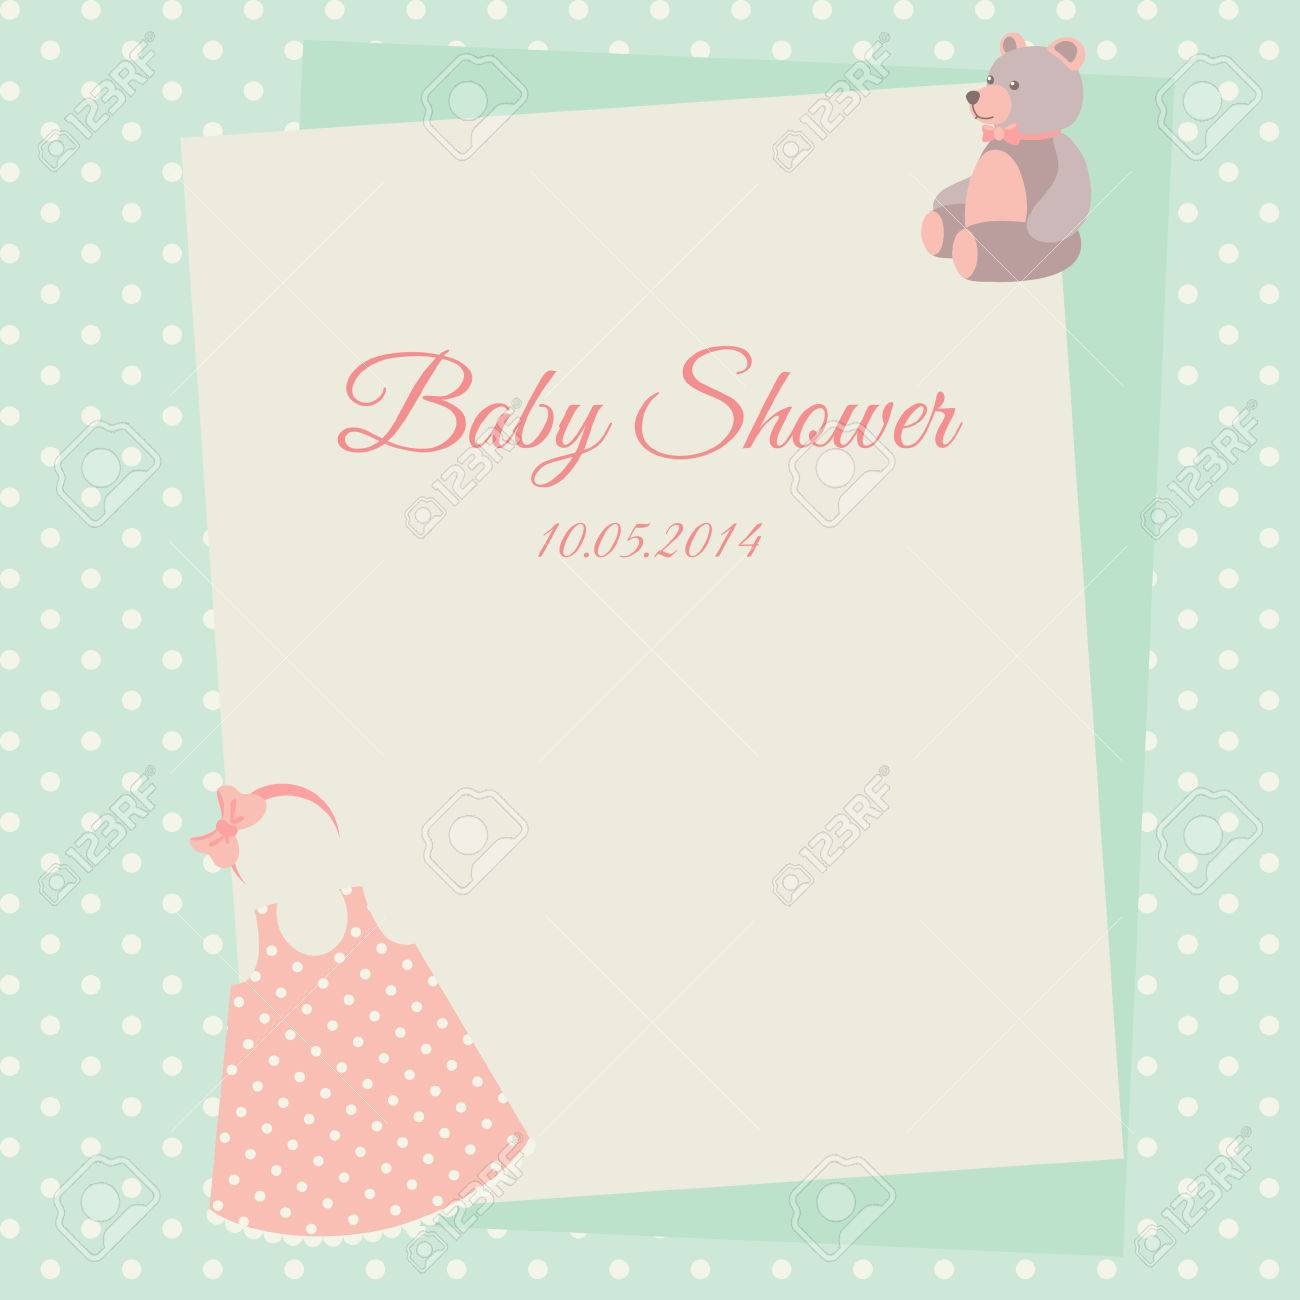 Baby Shower Invitation Card Template With Dress And Teddy Bear